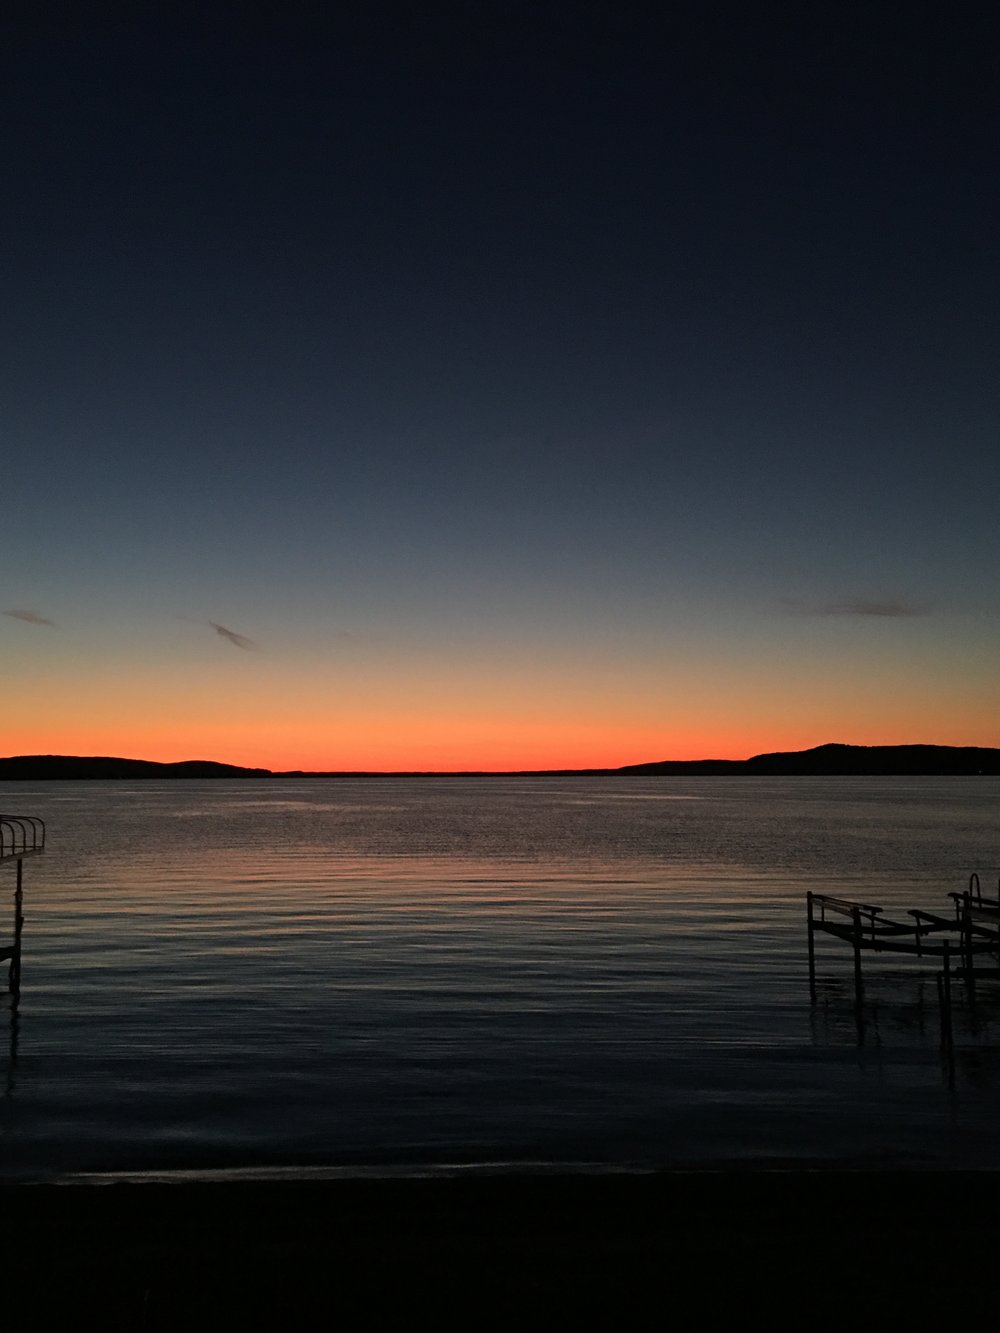 Sunset over Crystal lake in Benzonia, MI